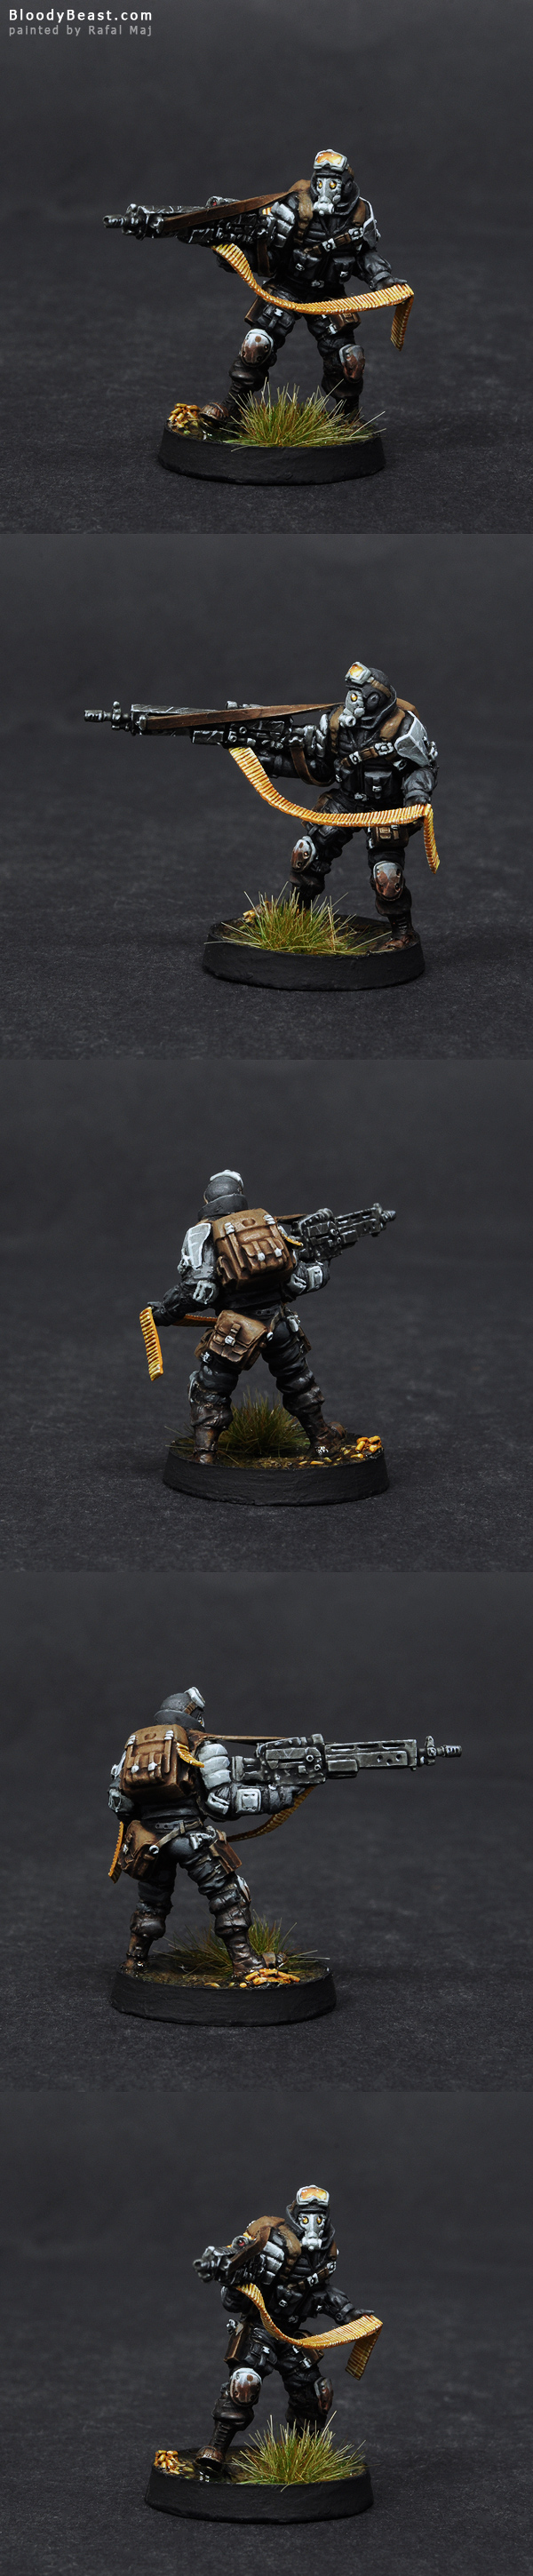 Ariadna Intel Spec-Op HMG painted by Rafal Maj (BloodyBeast.com)